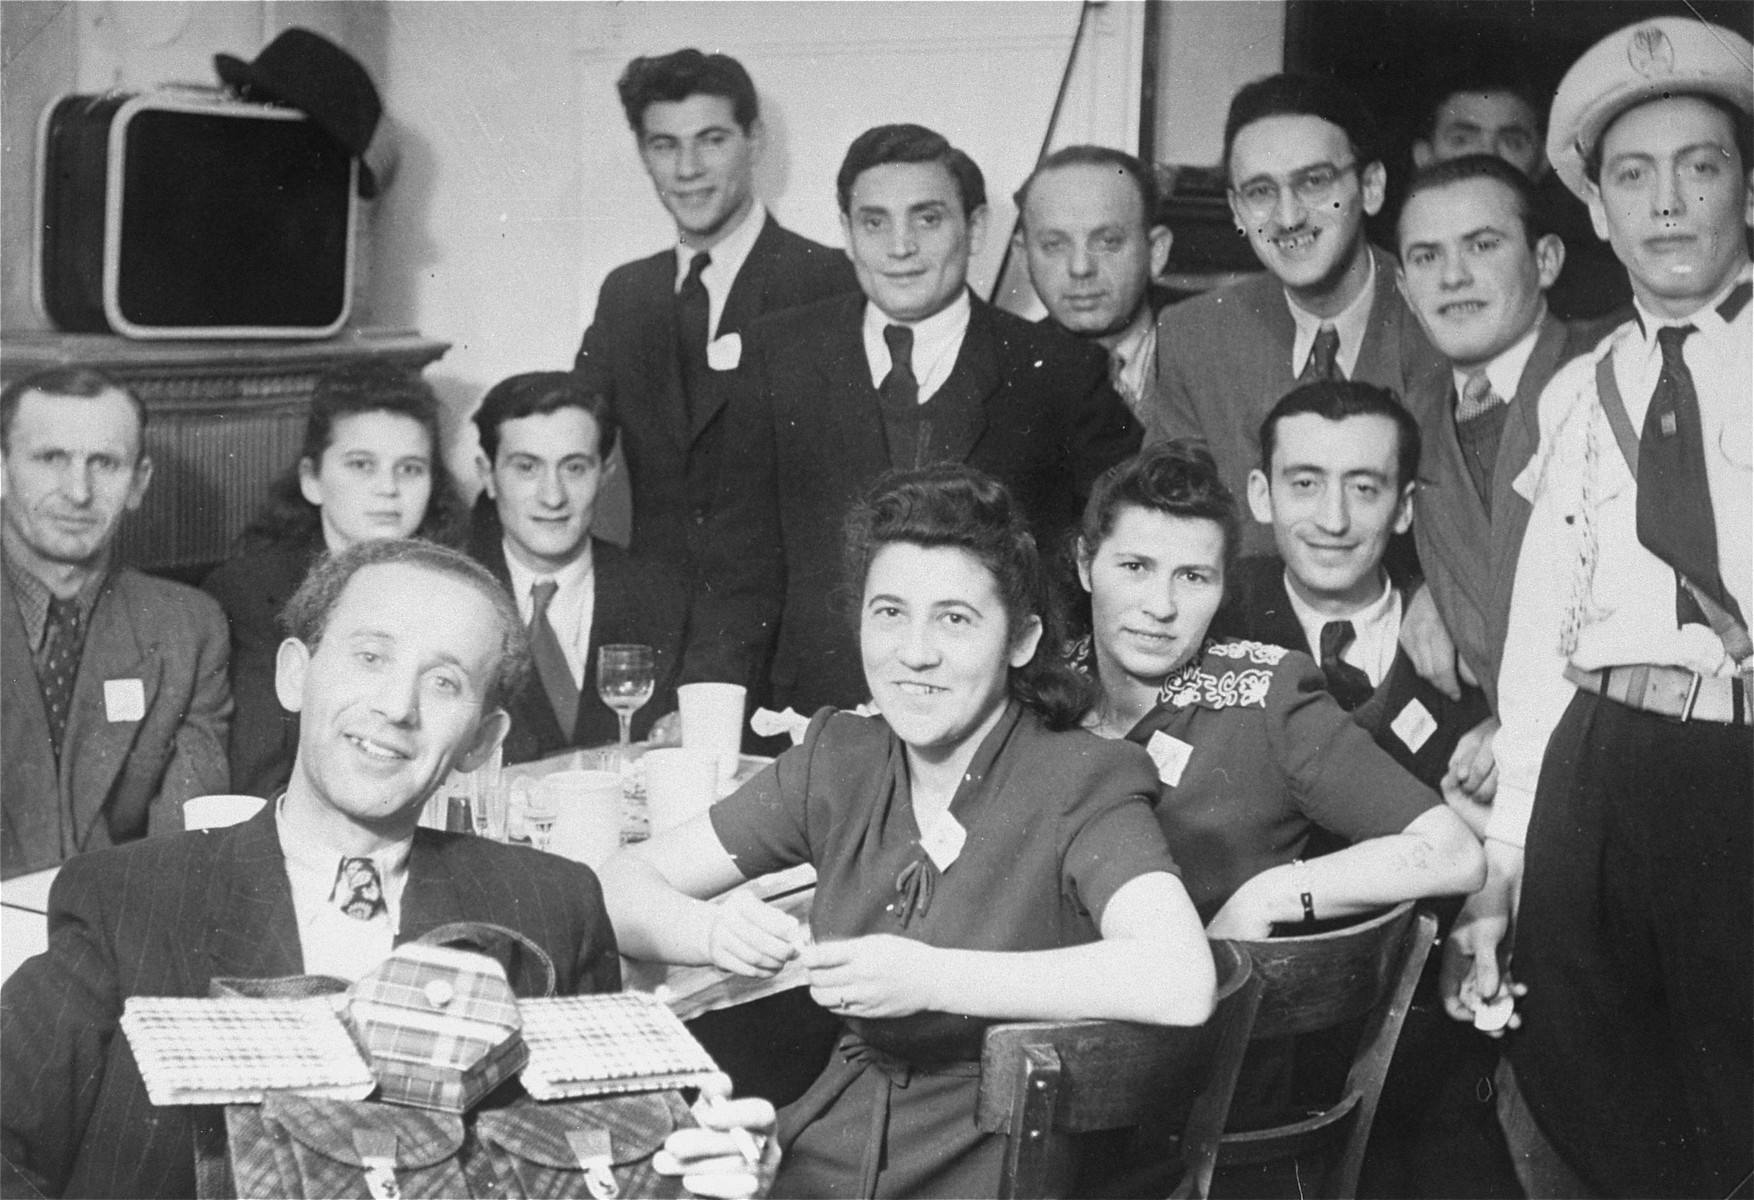 Group portrait of Jewish DPs gathered around a table in the Mittenwald displaced persons camp.